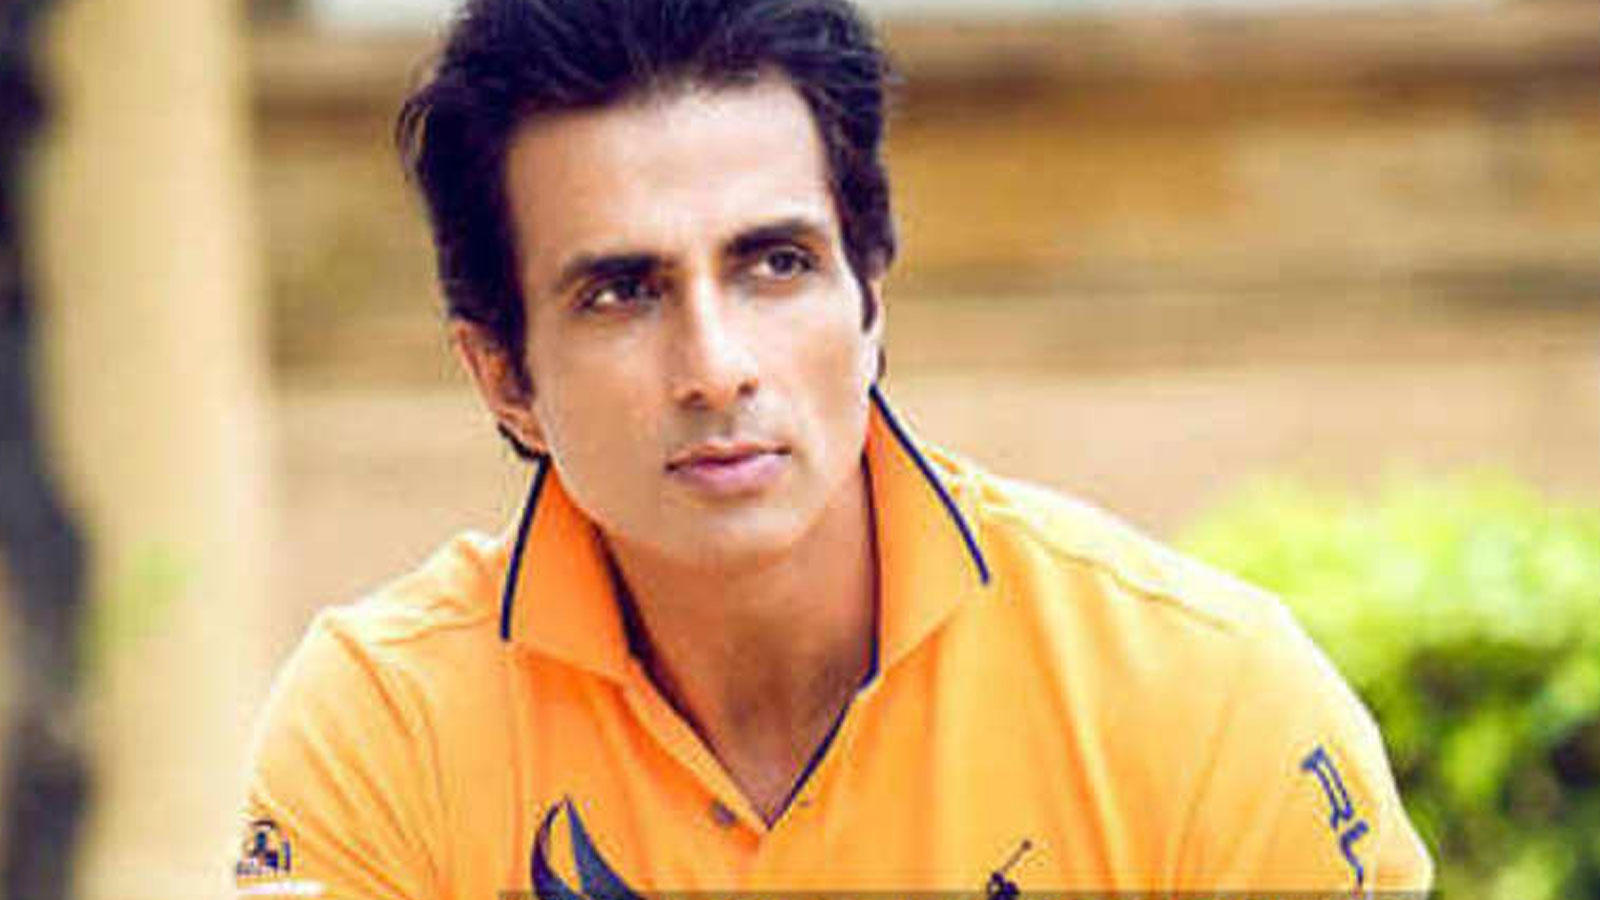 now-sonu-sood-to-provide-free-education-to-aspiring-lawyers-with-his-new-sankalp-initiative-netizens-hail-actor